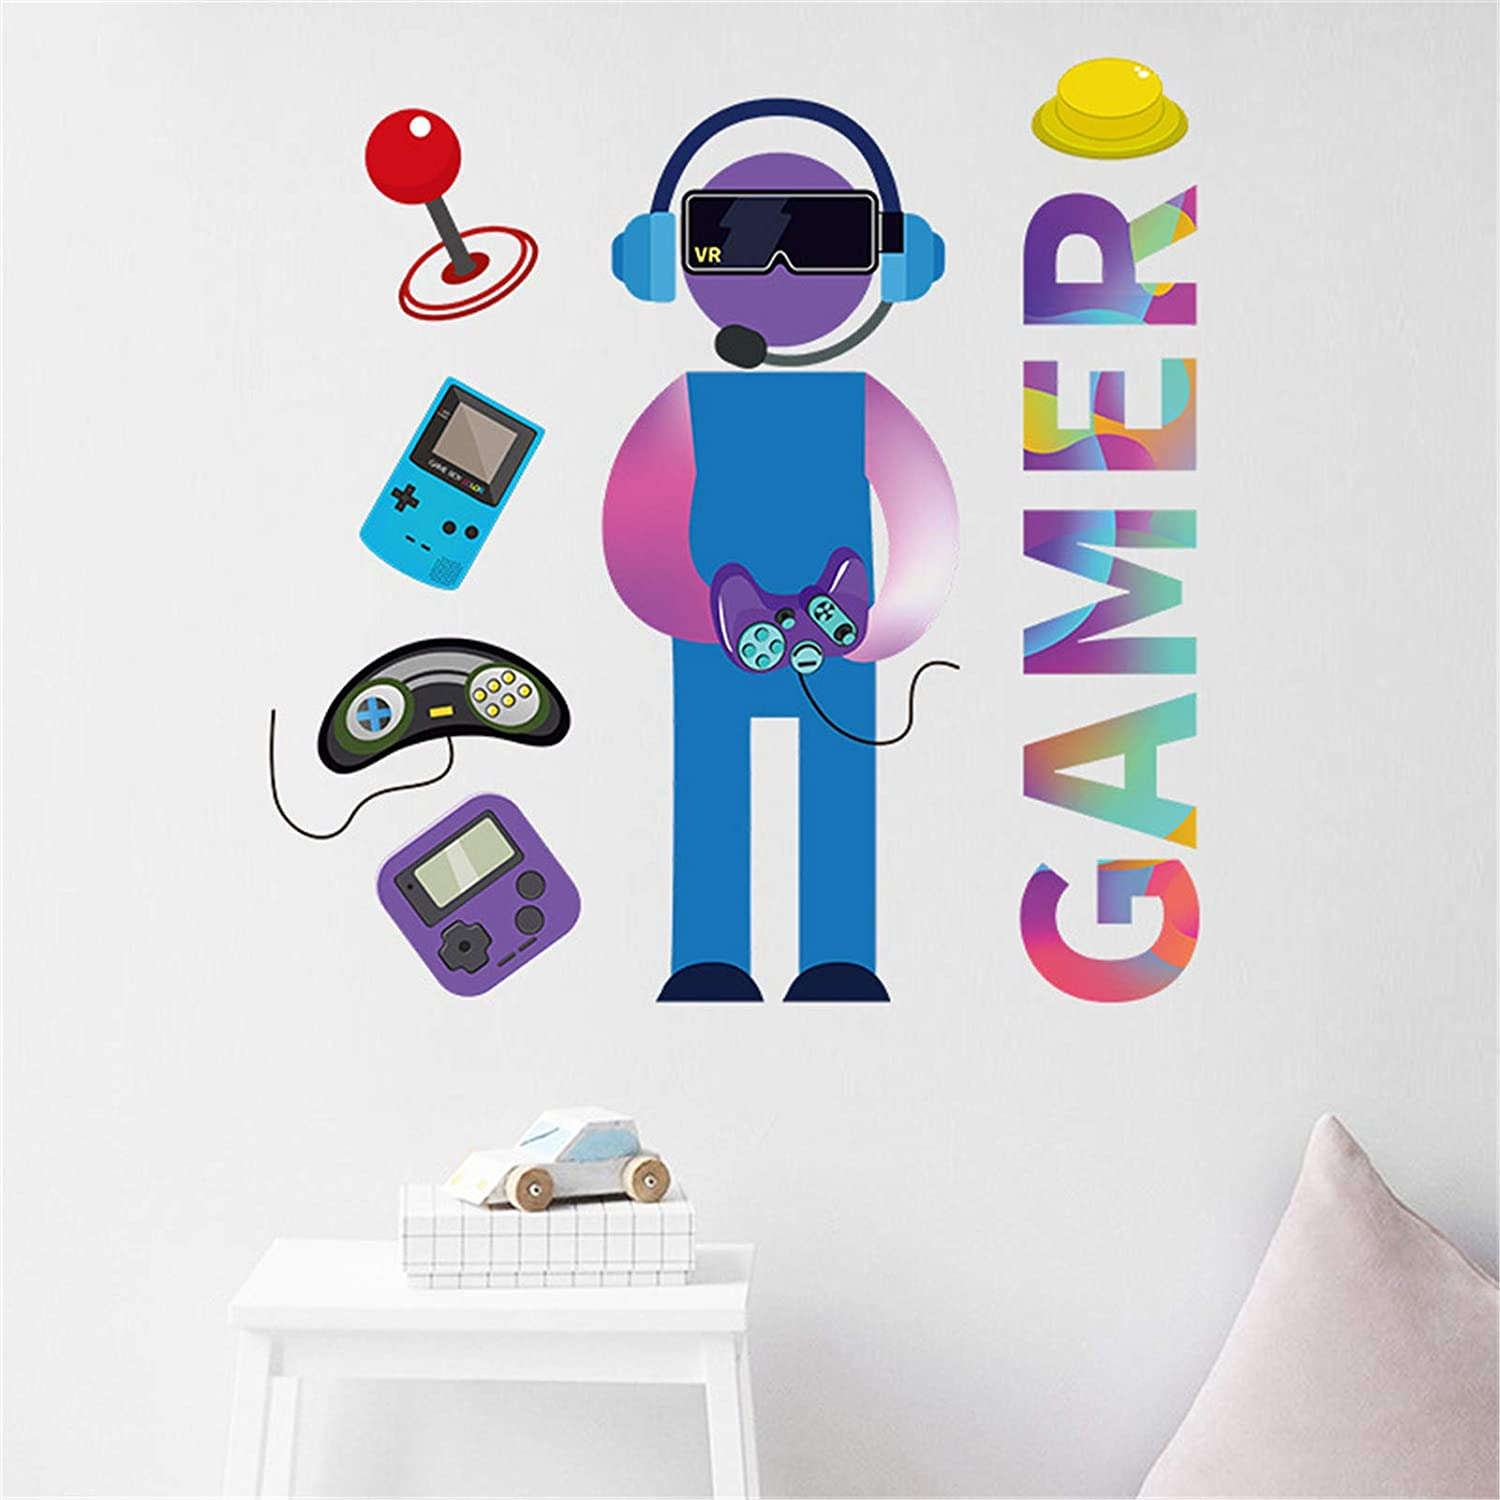 Game Wall Decals Colorful Gamer Creative Controller Wall Posters Video Game Boys Kids Home Room Playroom Bedroom Decor Wall Mural Stickers